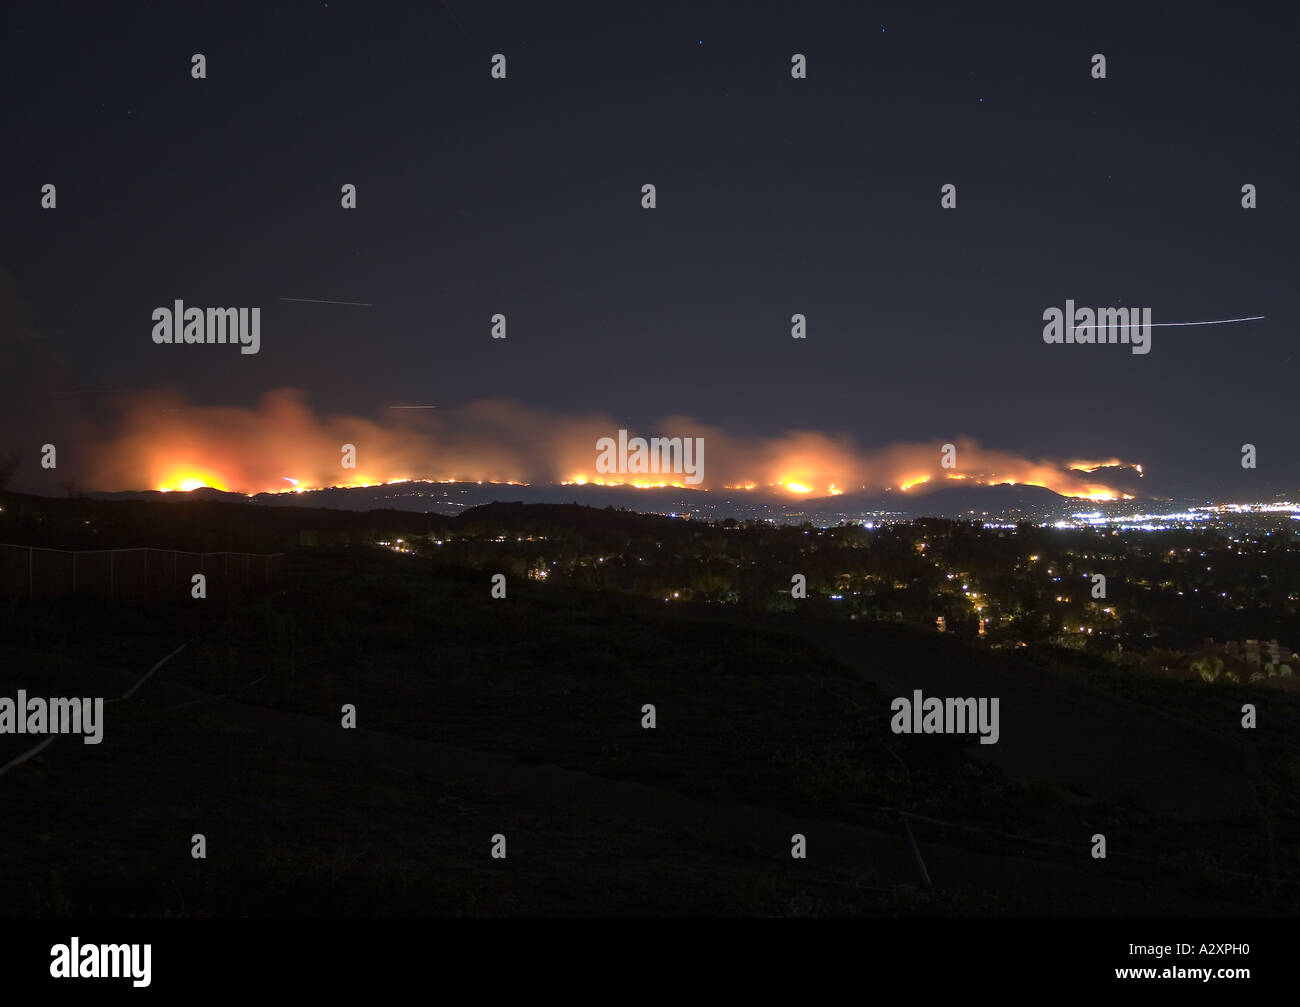 17 second exposure reveals aircraft trails during wildfire. - Stock Image